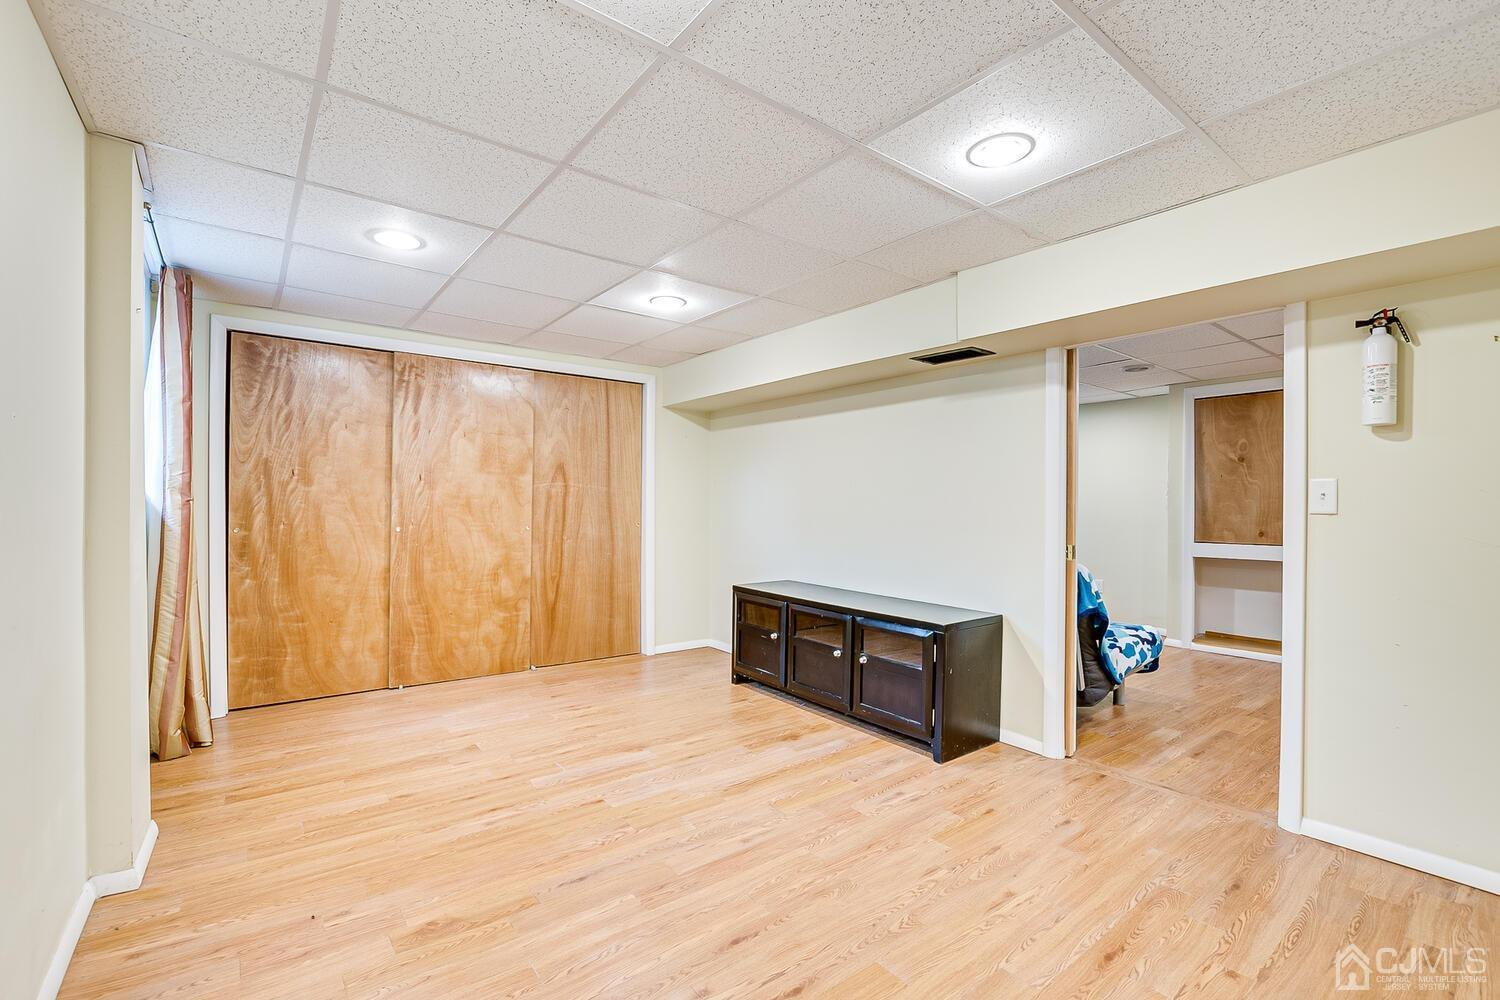 This is that Large Room with Double Closets and Recessed Lighting.